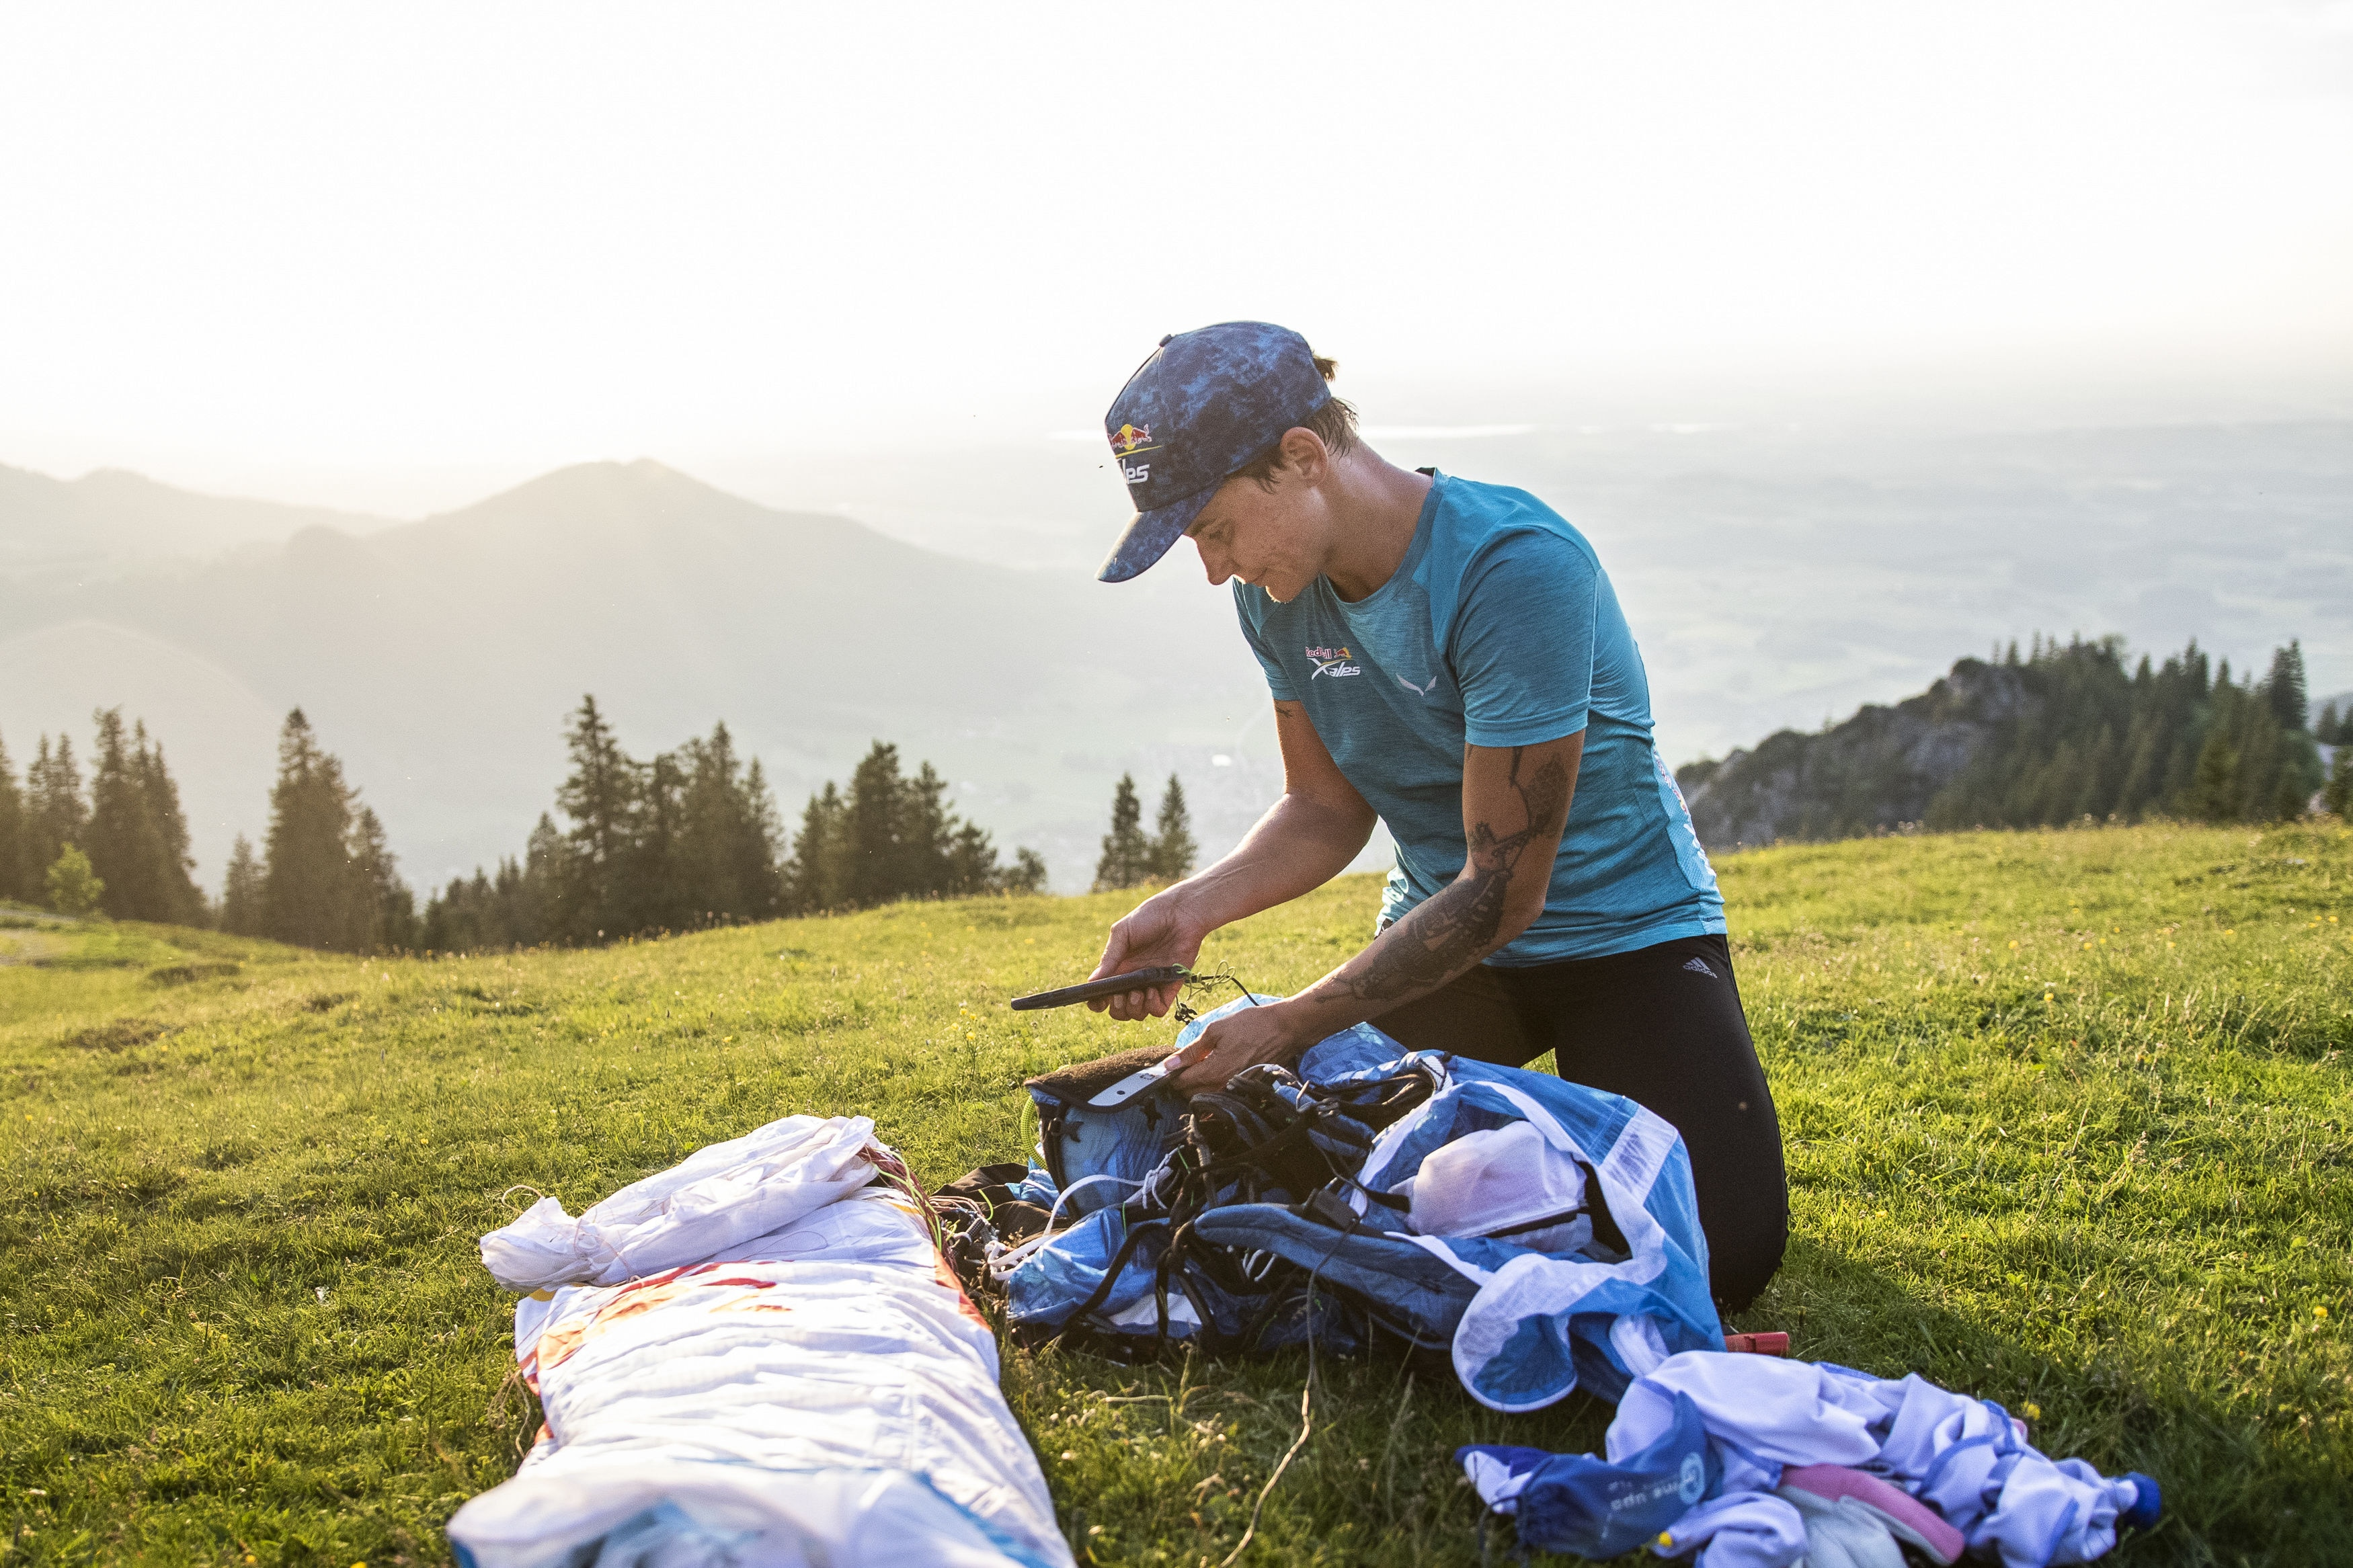 Kinga Masztalerz (NZL2) prepares during the Red Bull X-Alps in Aschau im Chiemgau, Germany on June 17, 2019